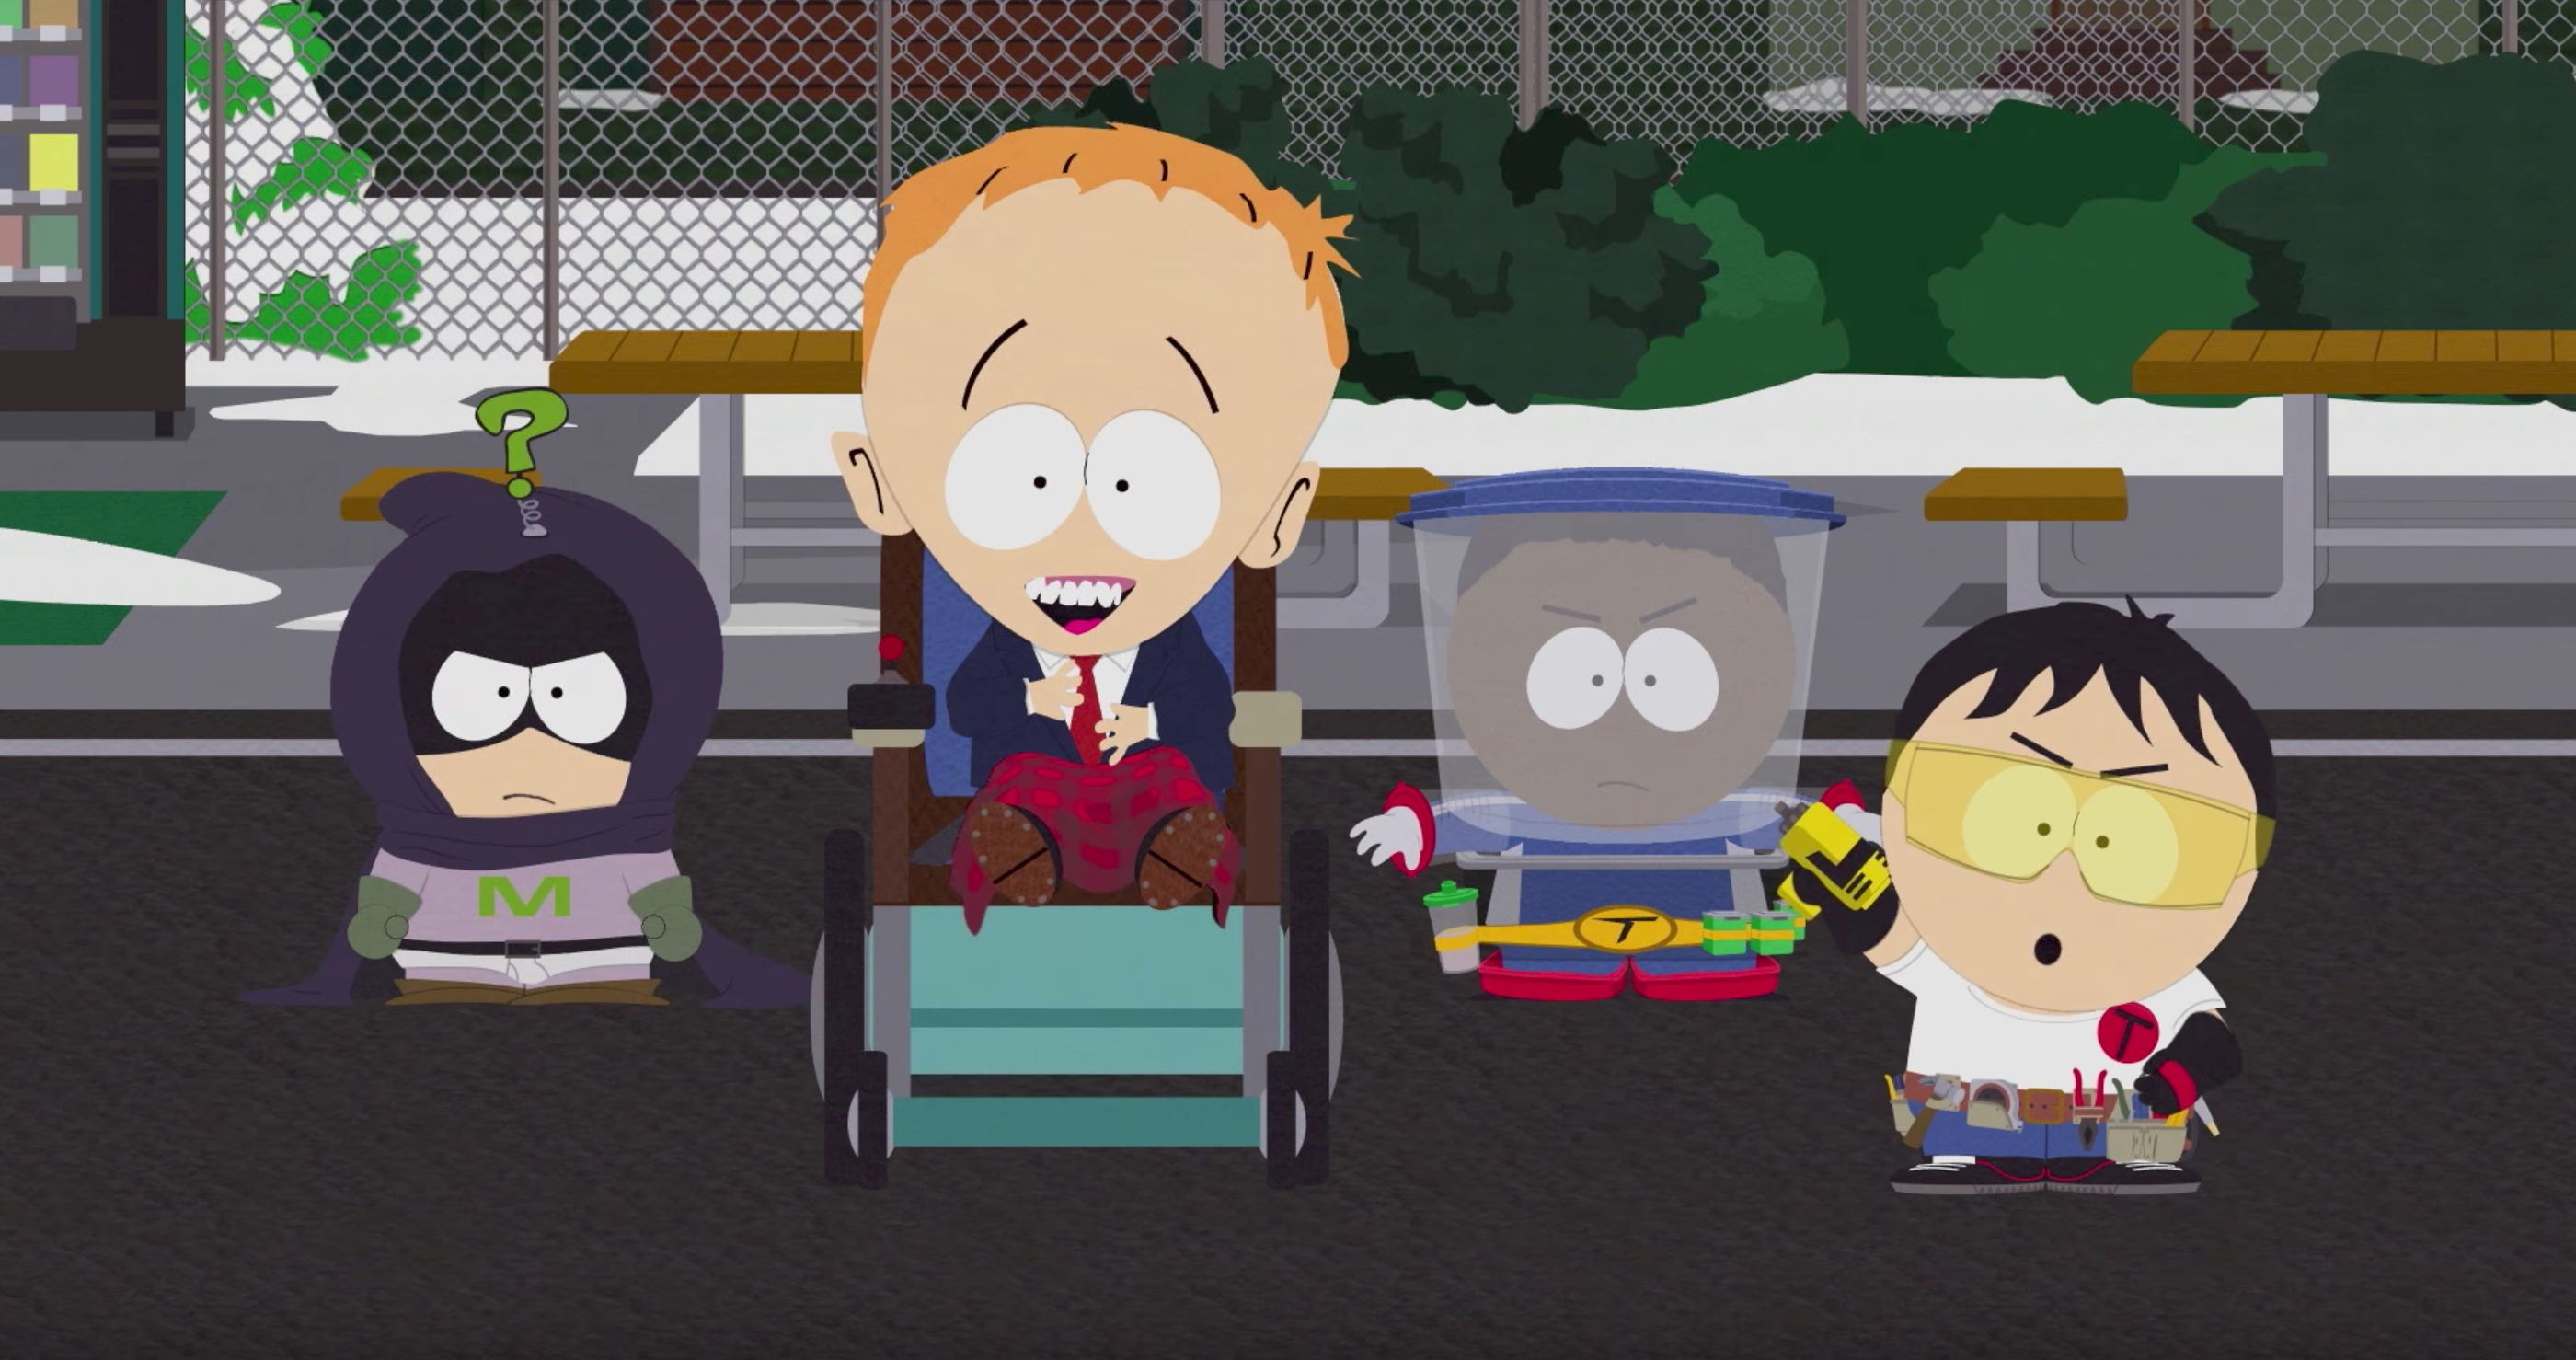 'South Park' Game Gets Harder Based On Your Character's Skin